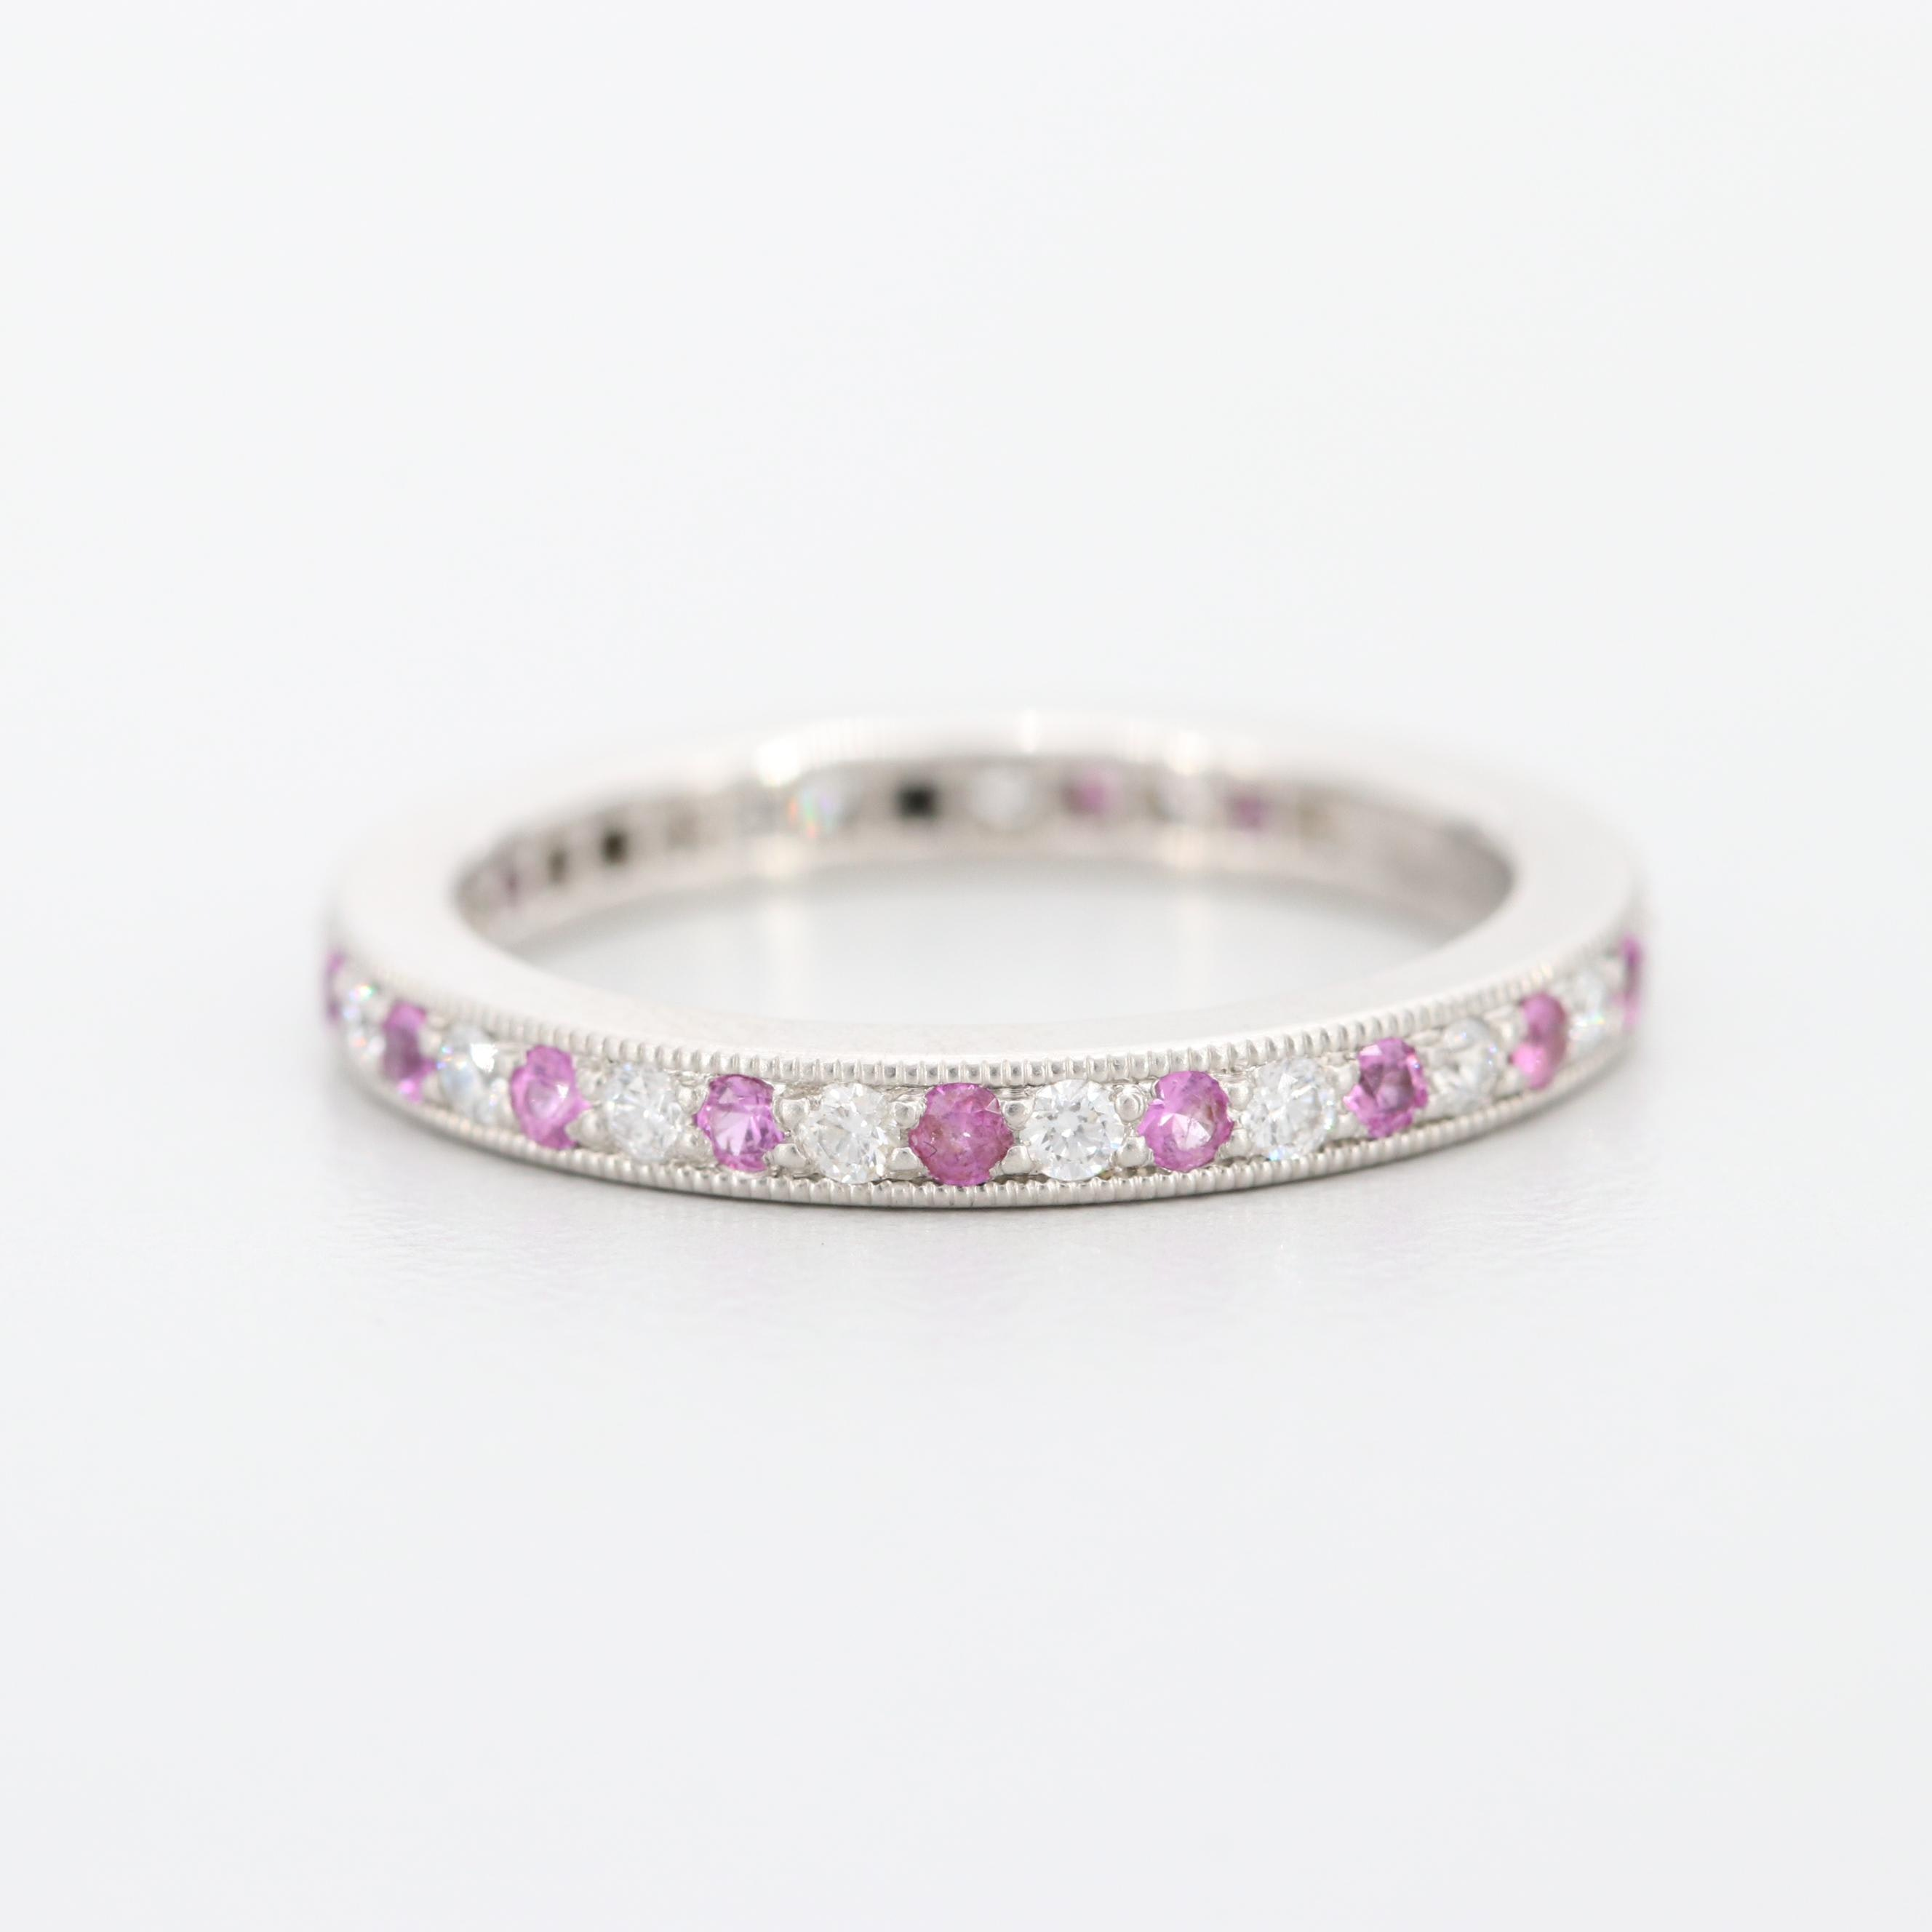 Tiffany & Co. Platinum Diamond and Pink Sapphire Eternity Ring with Box